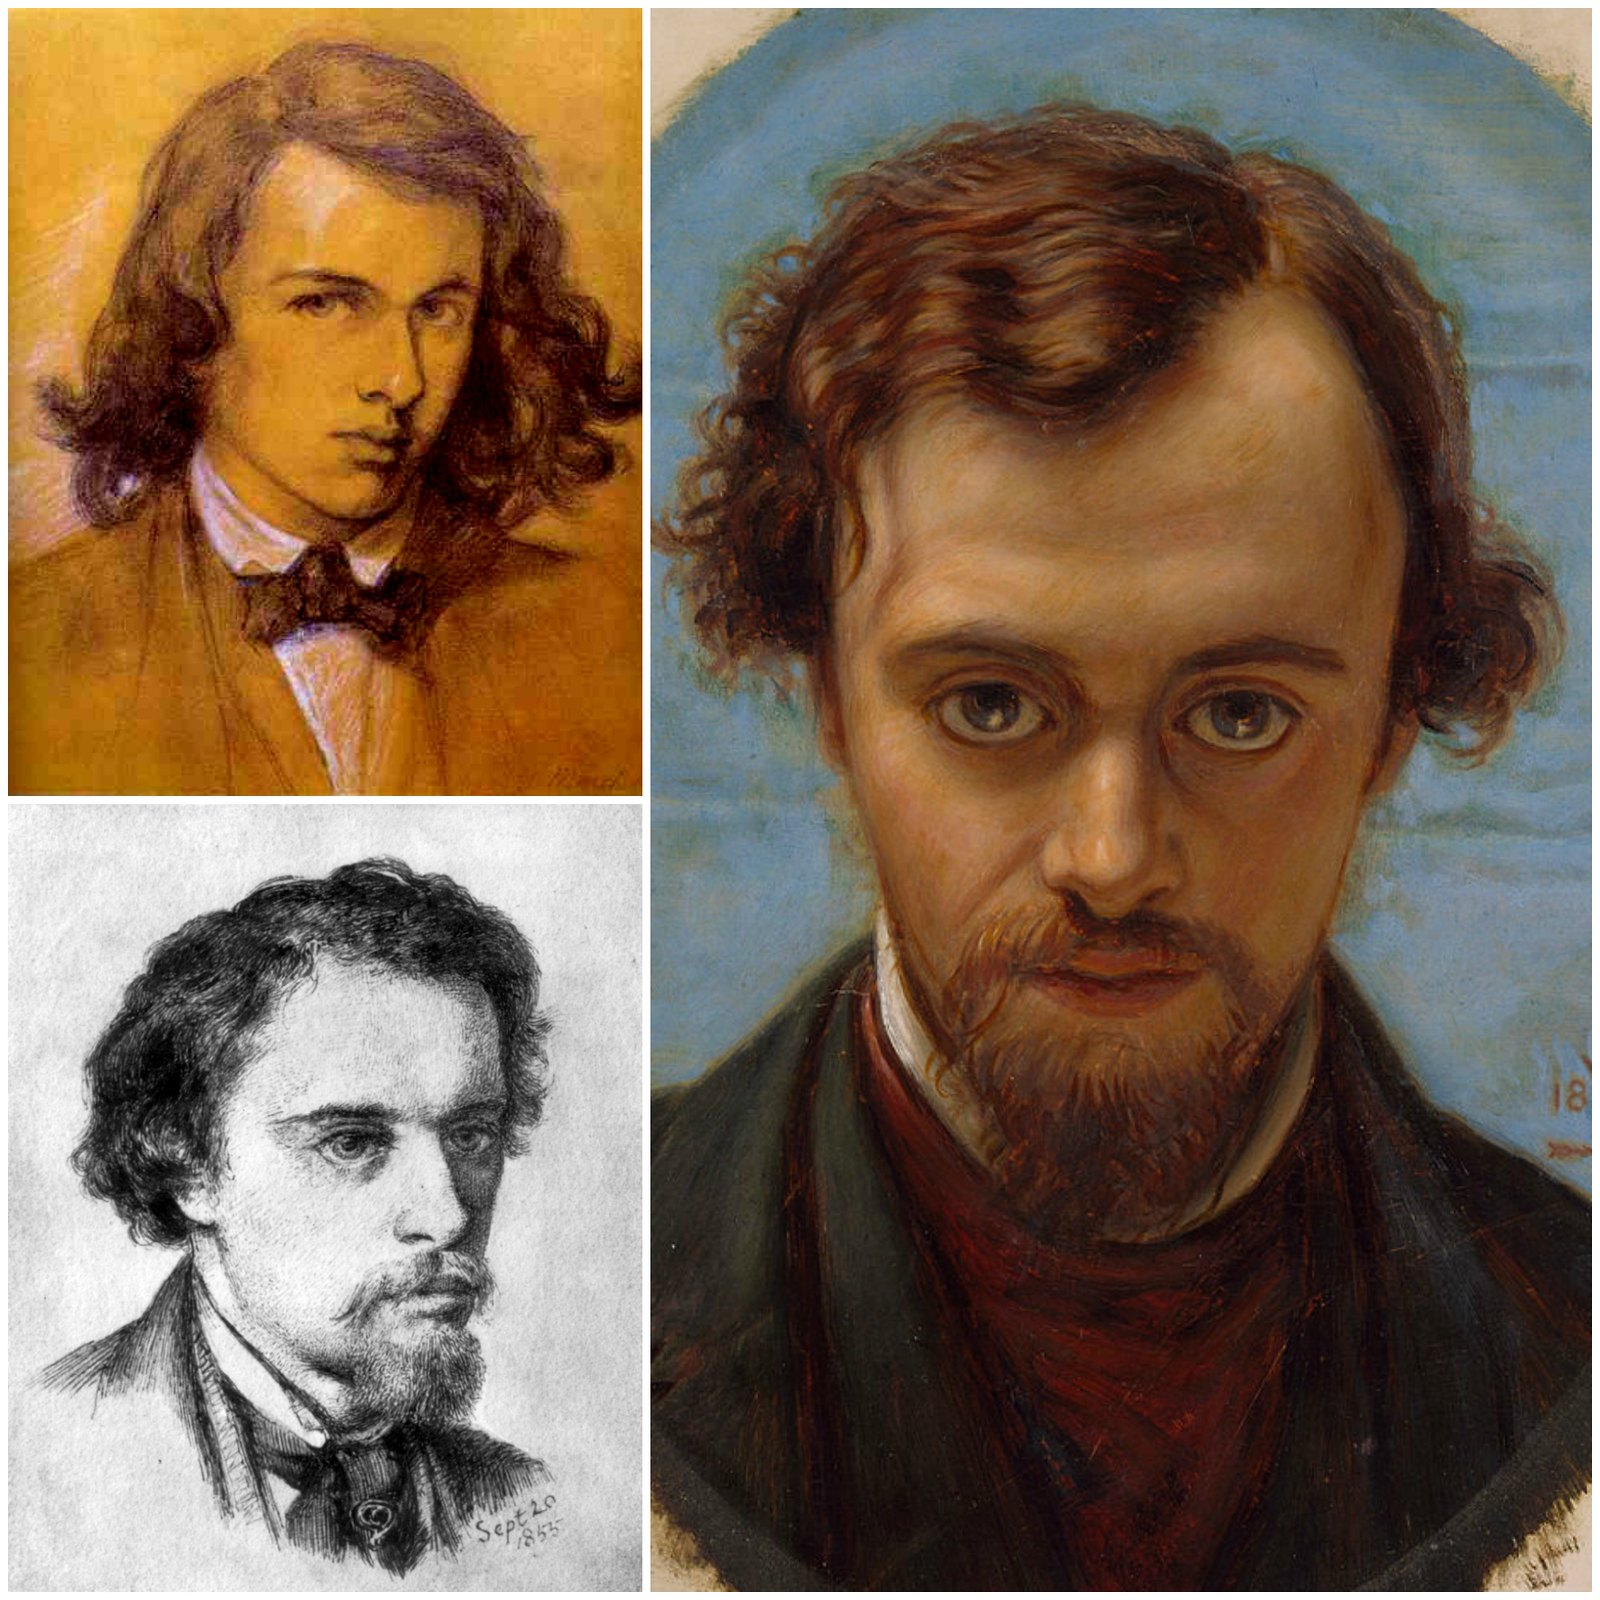 Dante Gabriel Rossetti in his early twenties